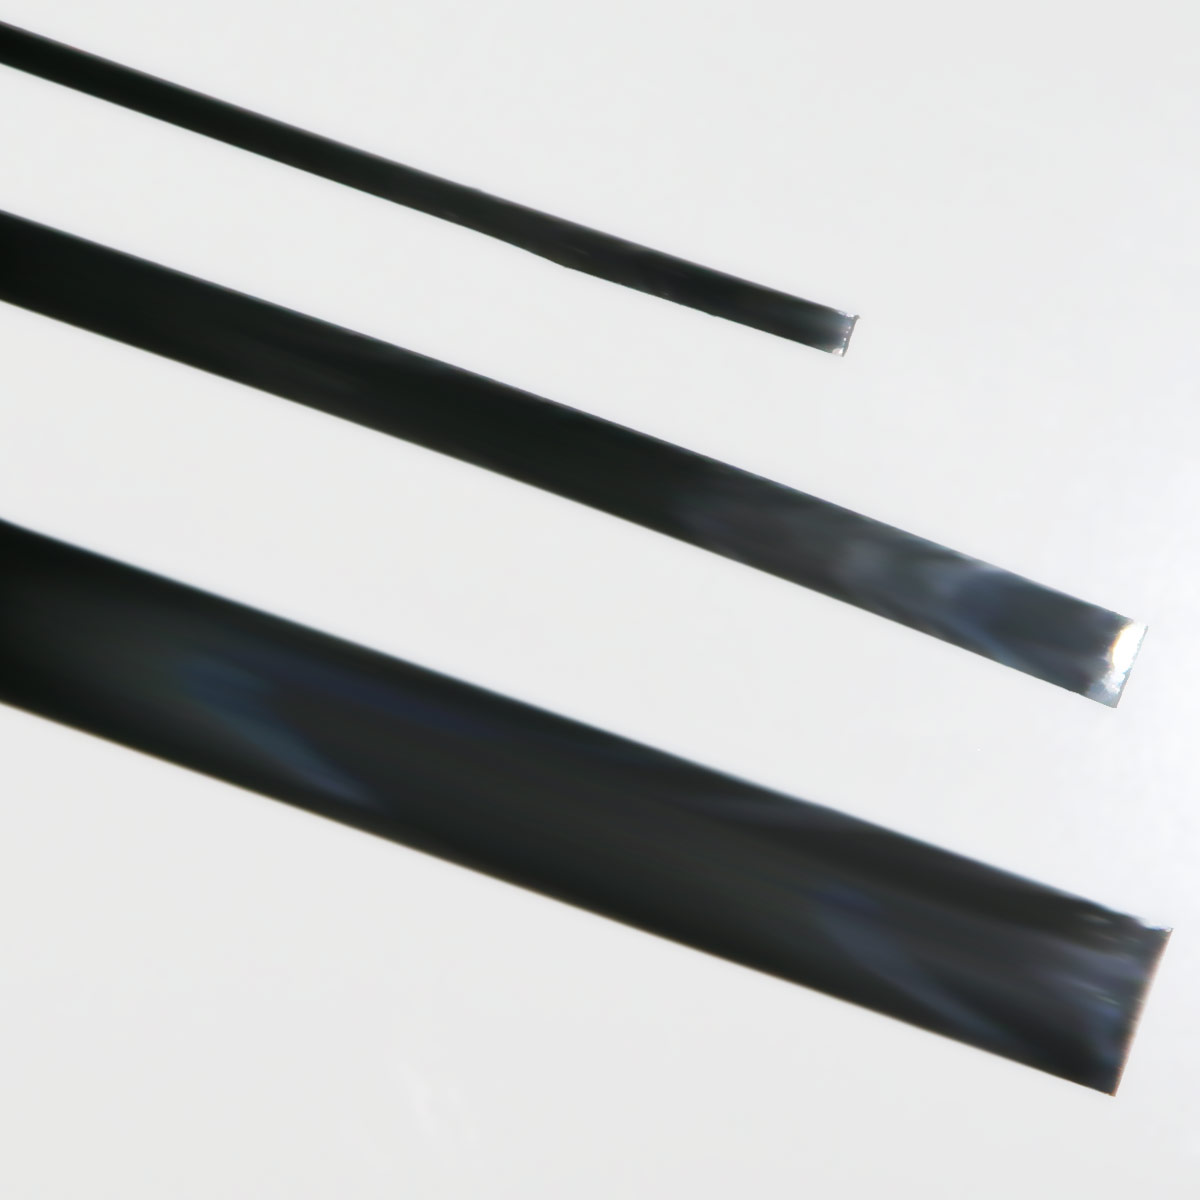 Magnetic strip